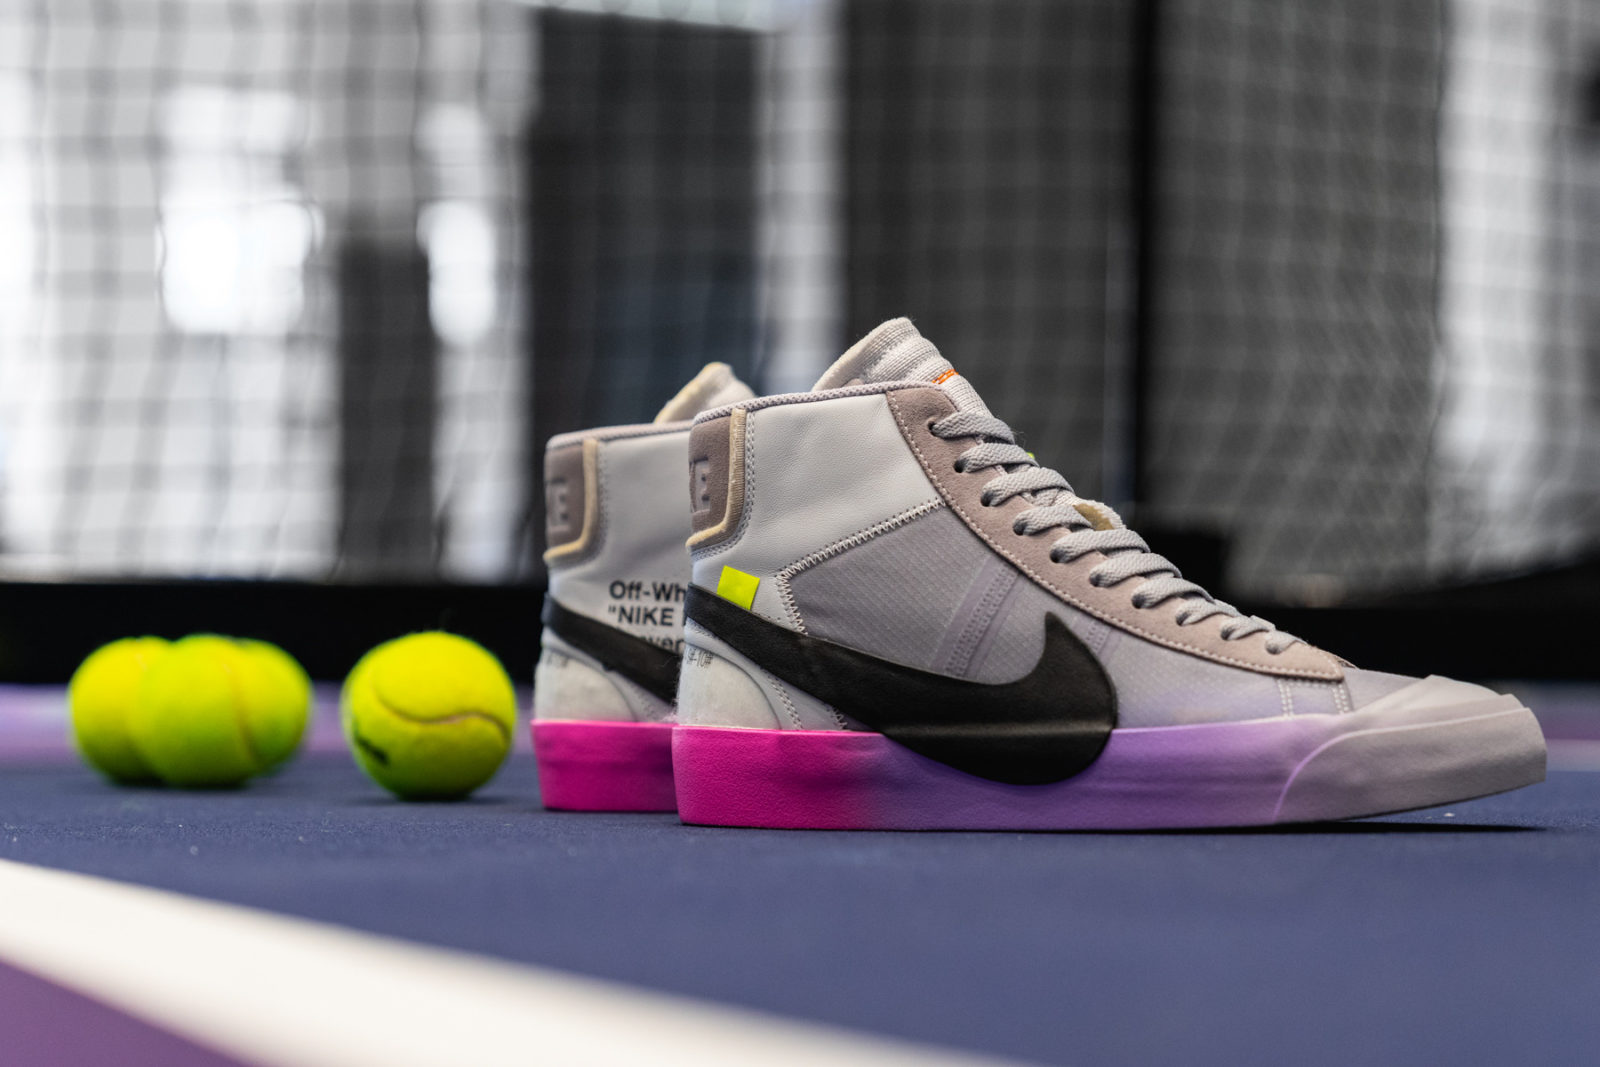 nike blazer off white serena williams